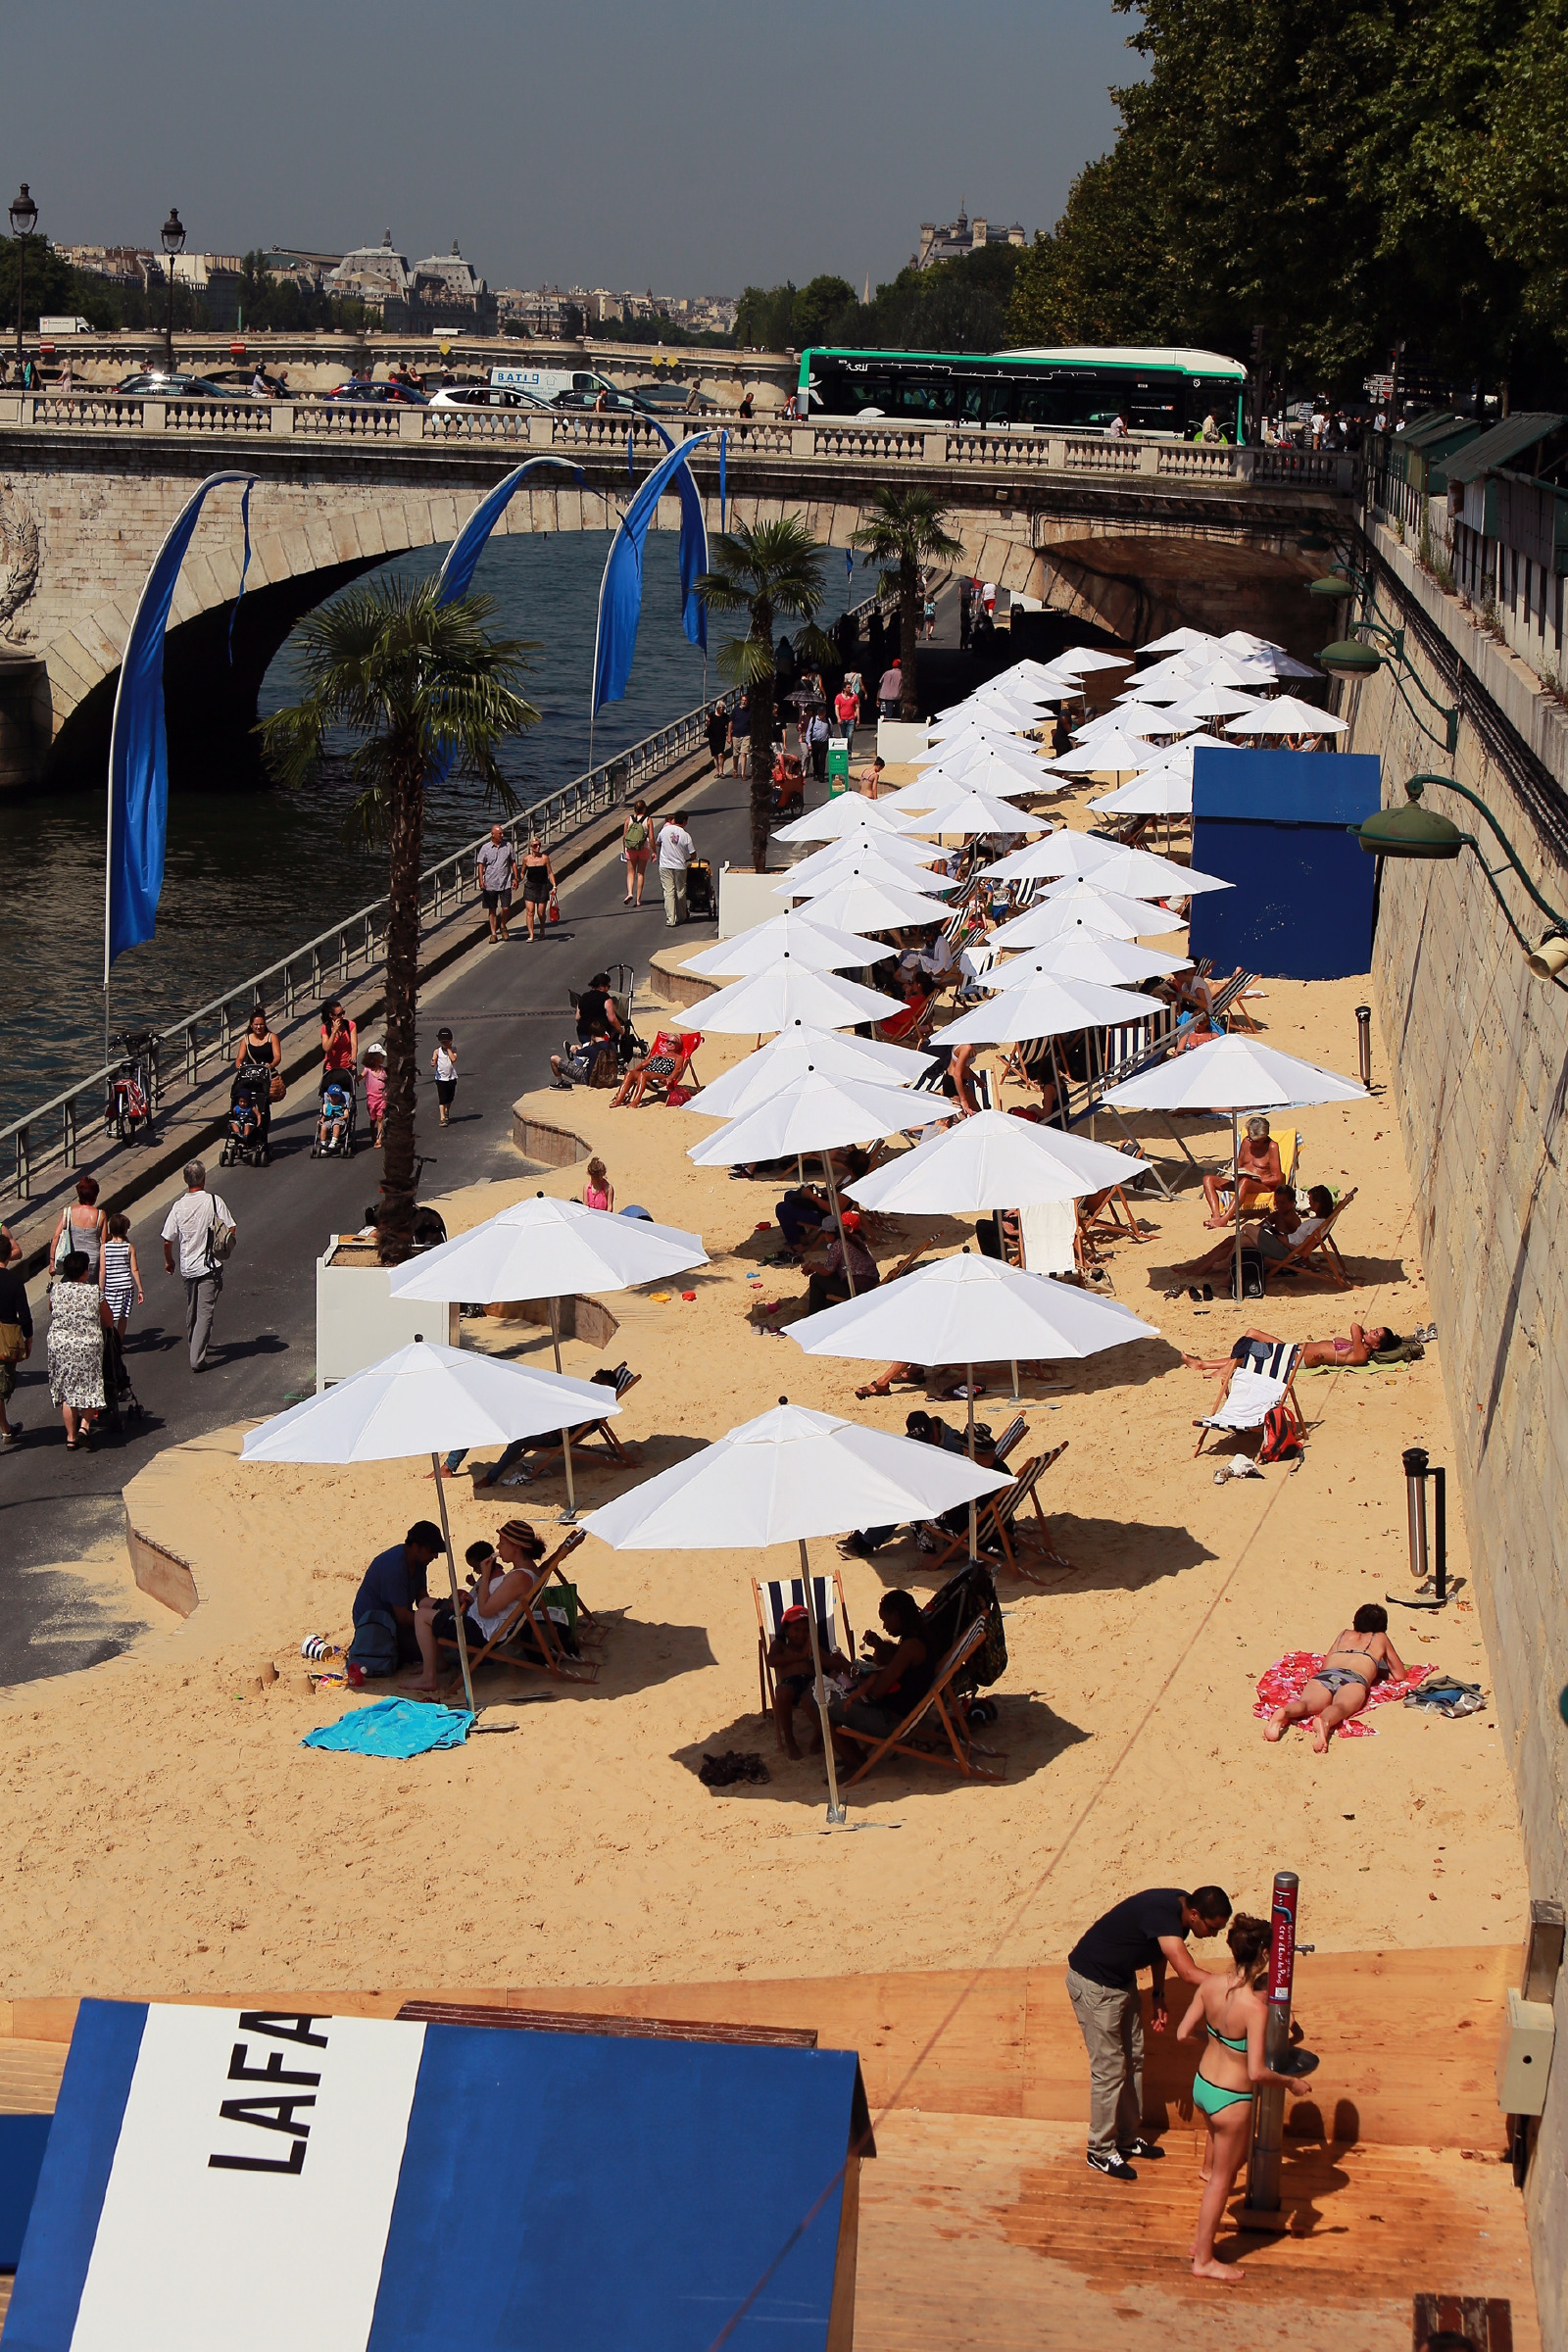 The project is inspired by the Paris Plages, which sees temporary beaches being installed along The Seine in summer.